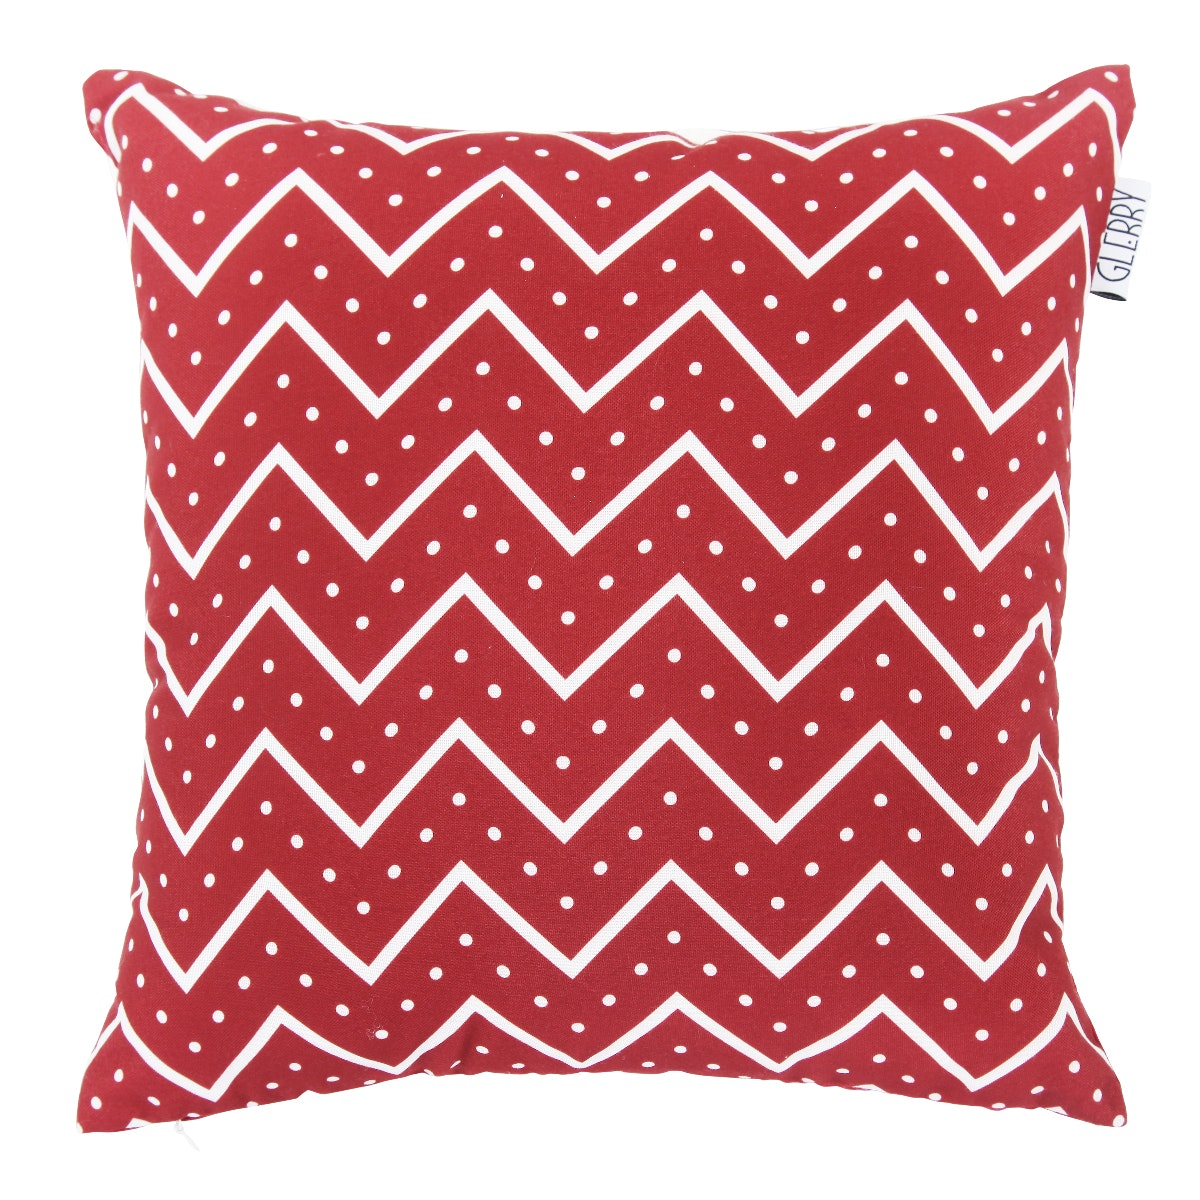 Glerry Home Decor Rave Red Chevron Cushion 40x40cm